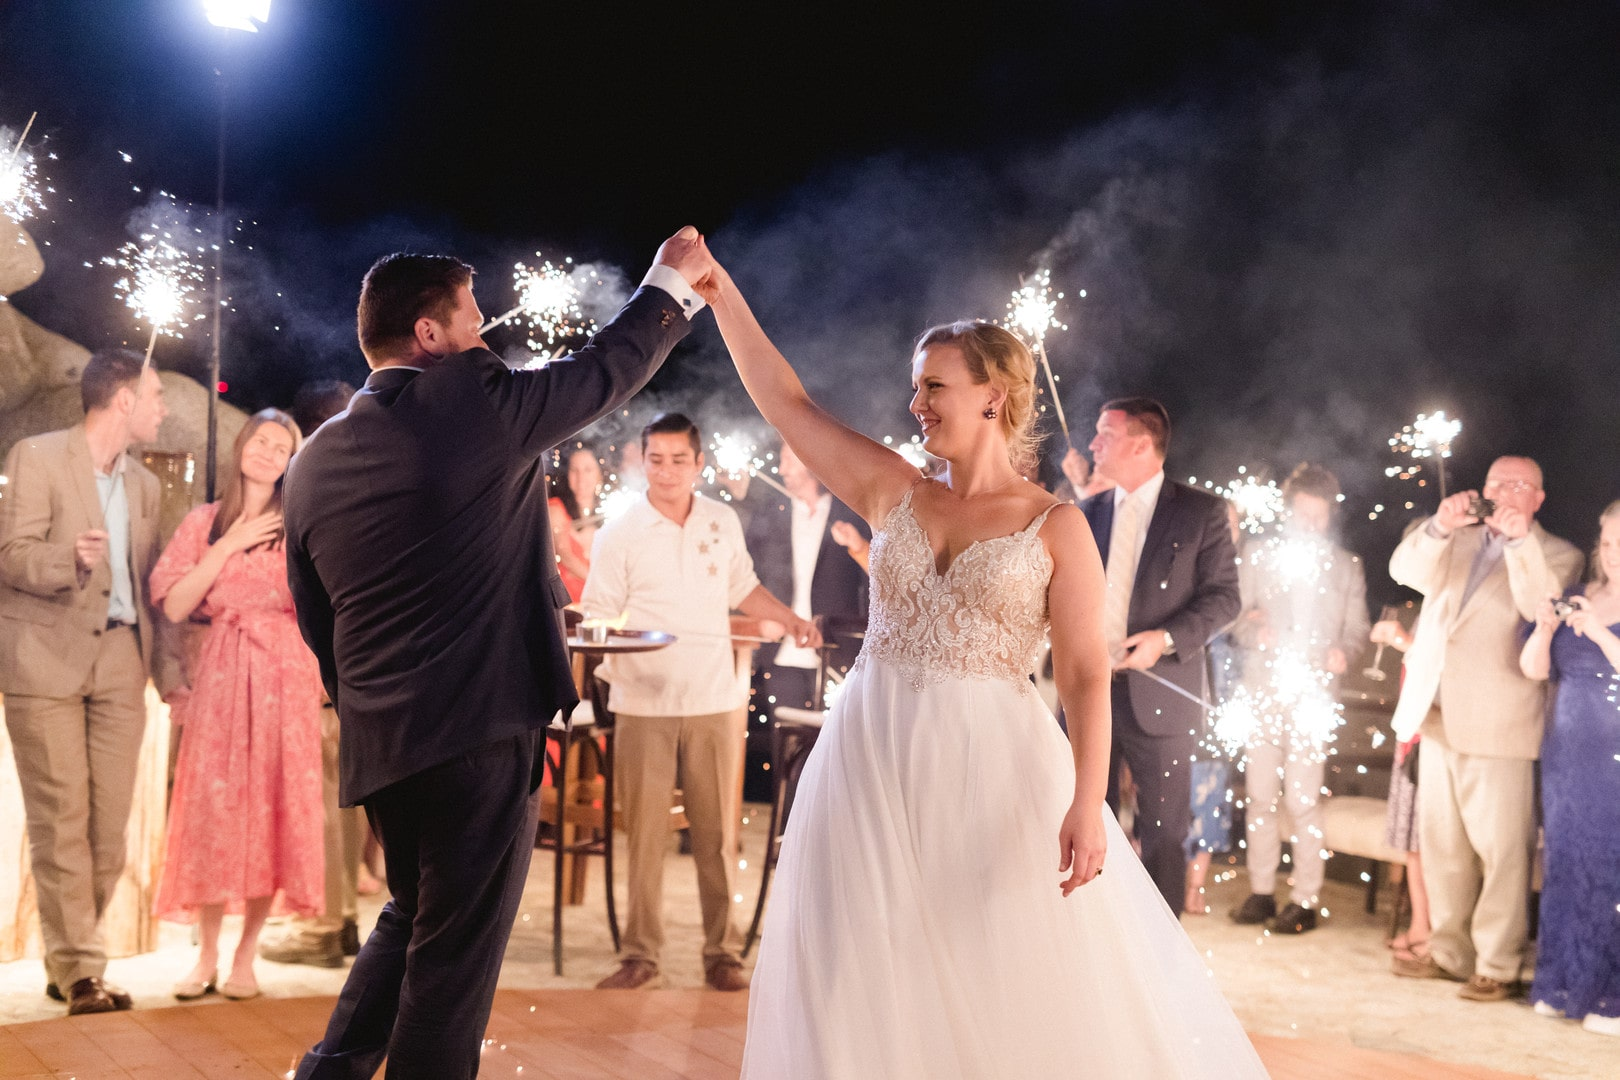 Annie & Brian's Intimate Resort Wedding in Cabo San Lucas, Photography by Sara Richardson Photography for Luxury Destination Wedding blog Adriana Weddings